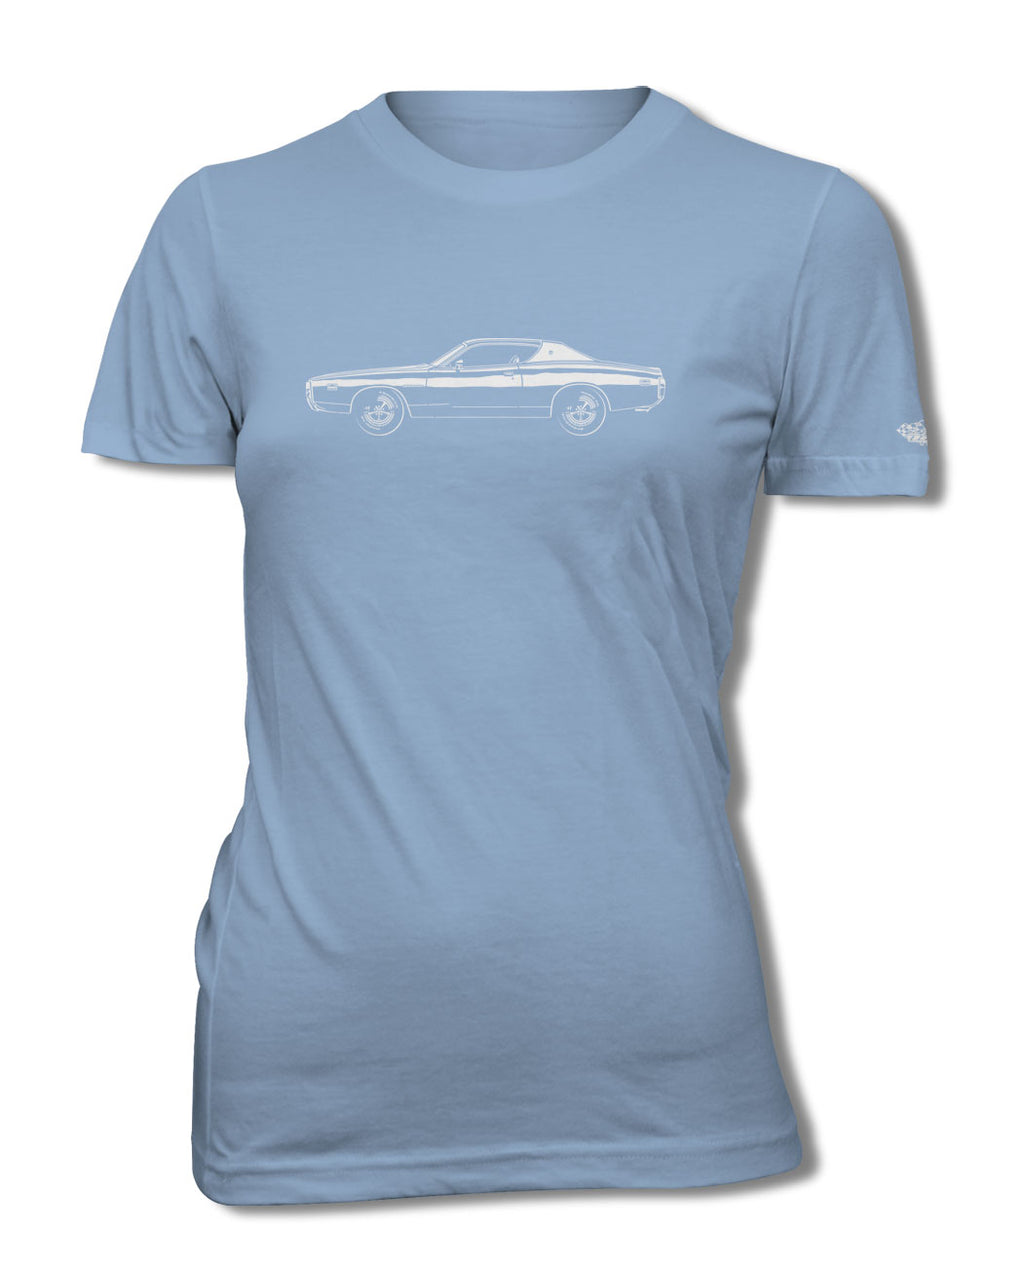 1971 Dodge Charger SE 383 Magnum Hardtop T-Shirt - Women - Side View